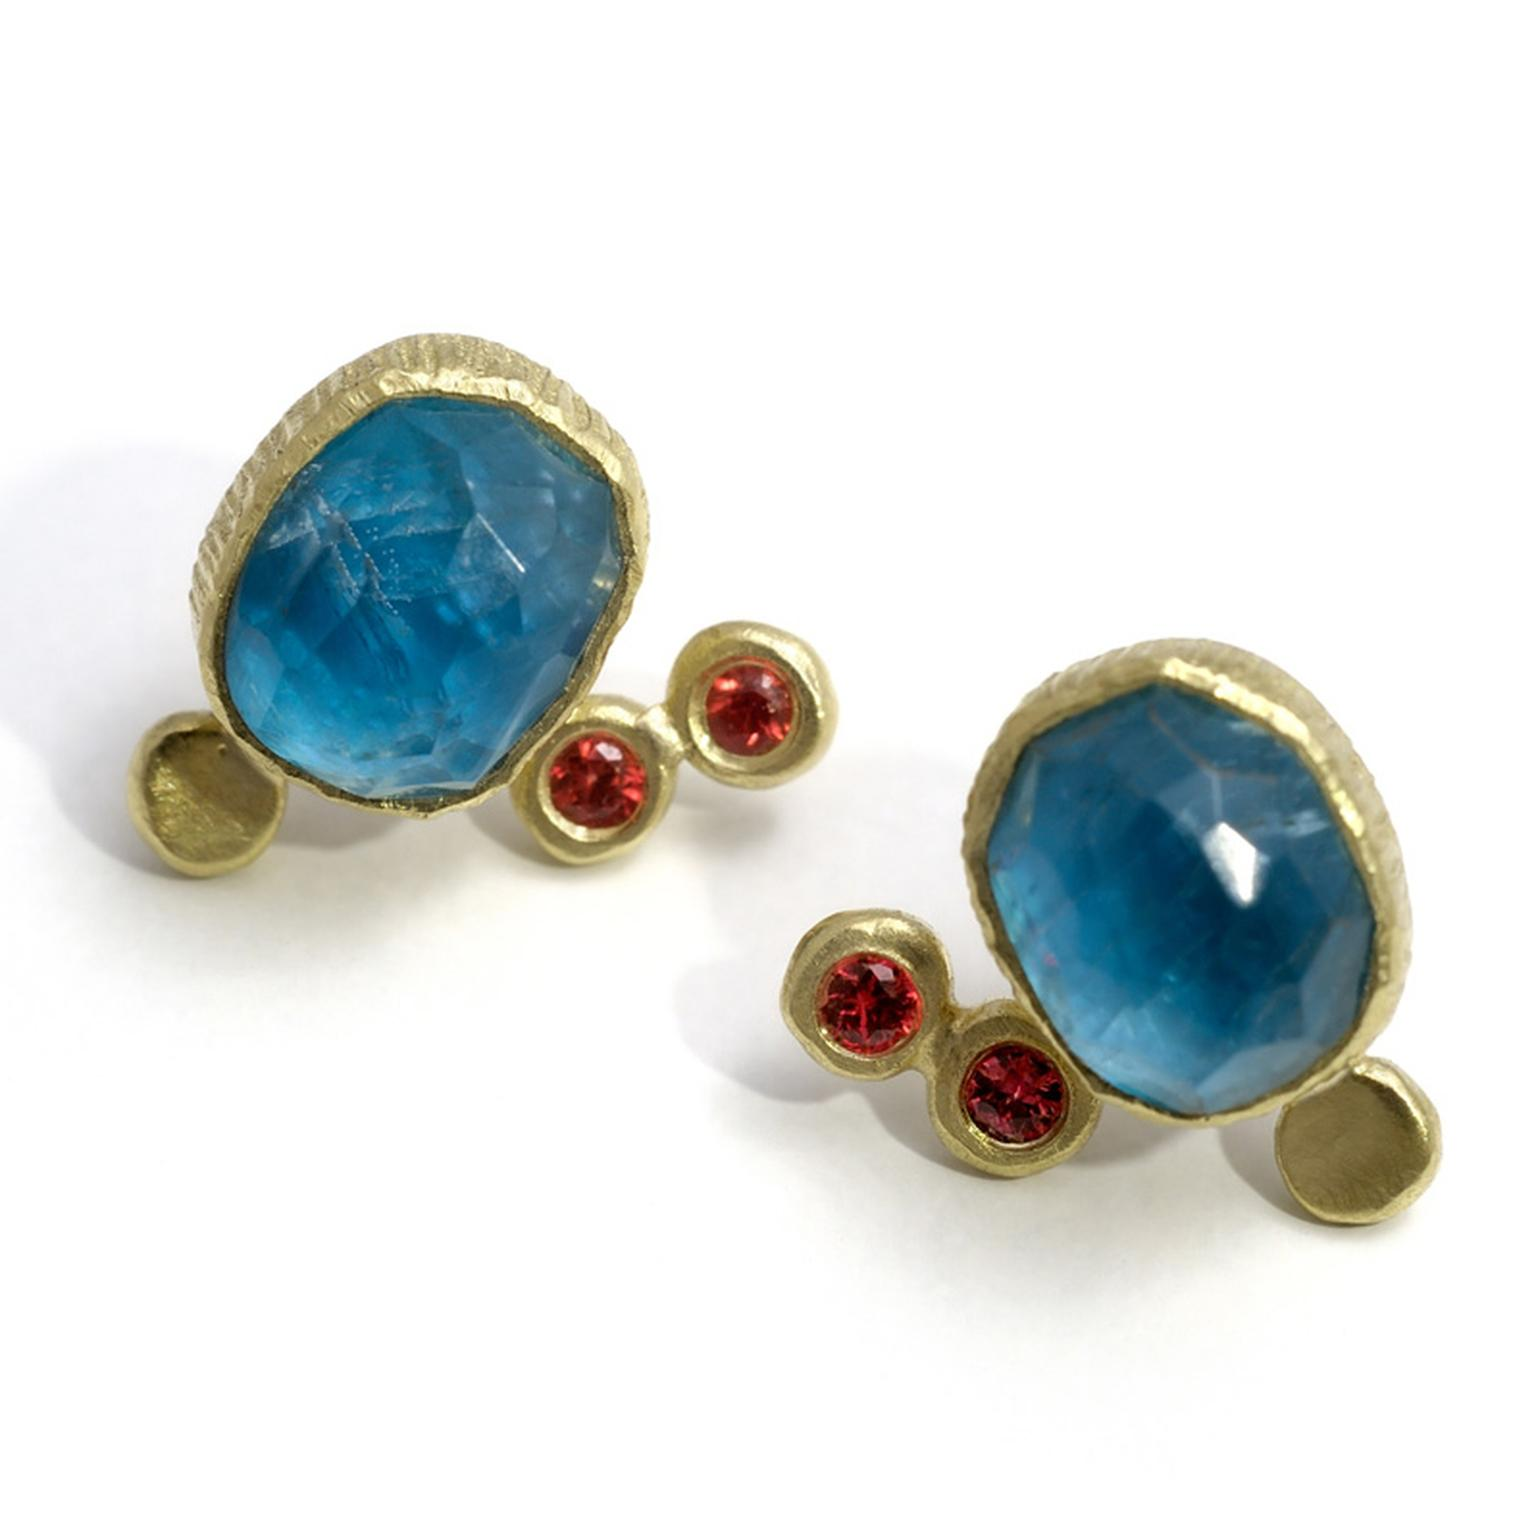 Maria Frantzi apatite stud earrings